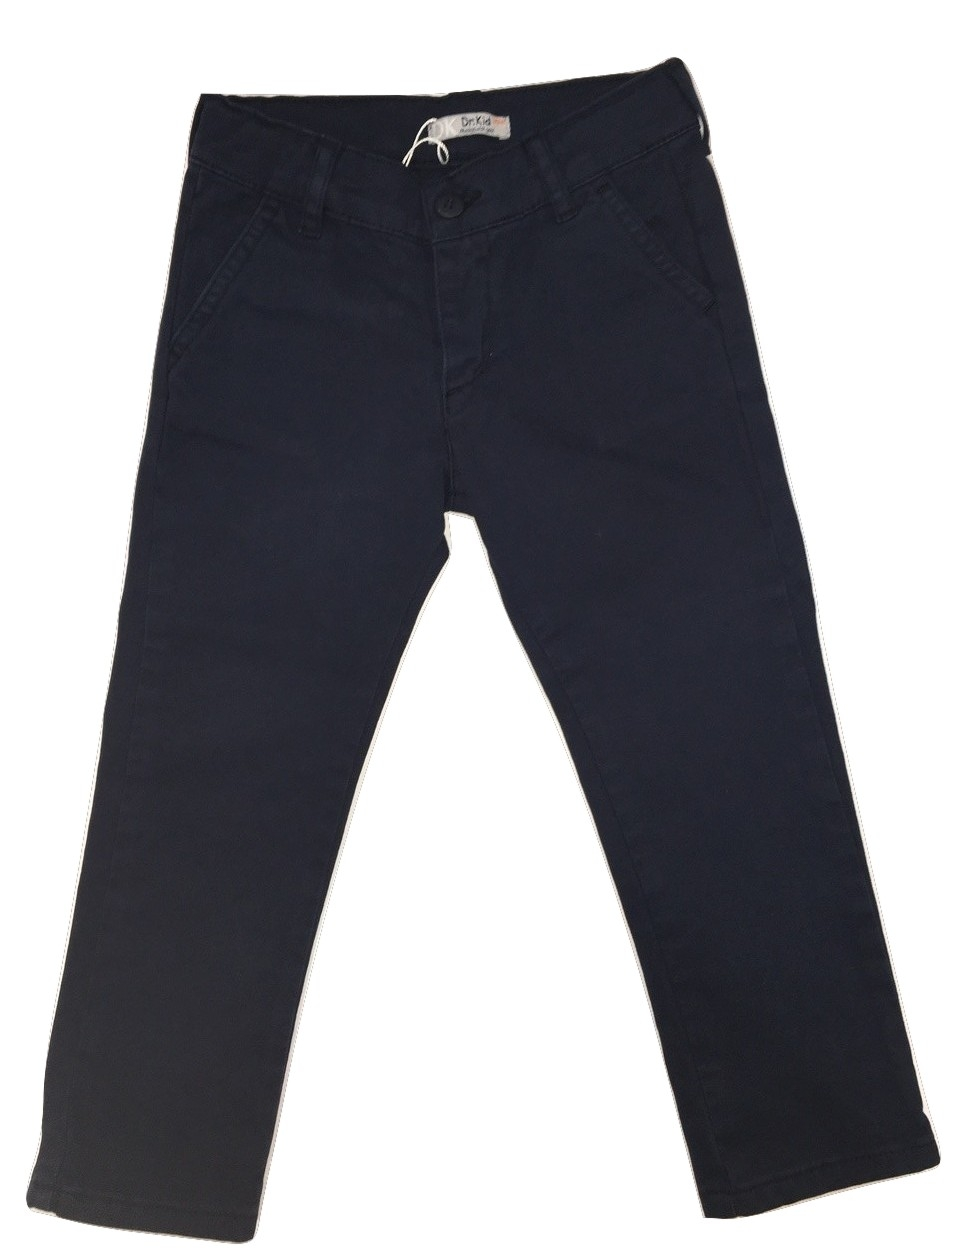 Dr.kid boys navy trouser(SALE)